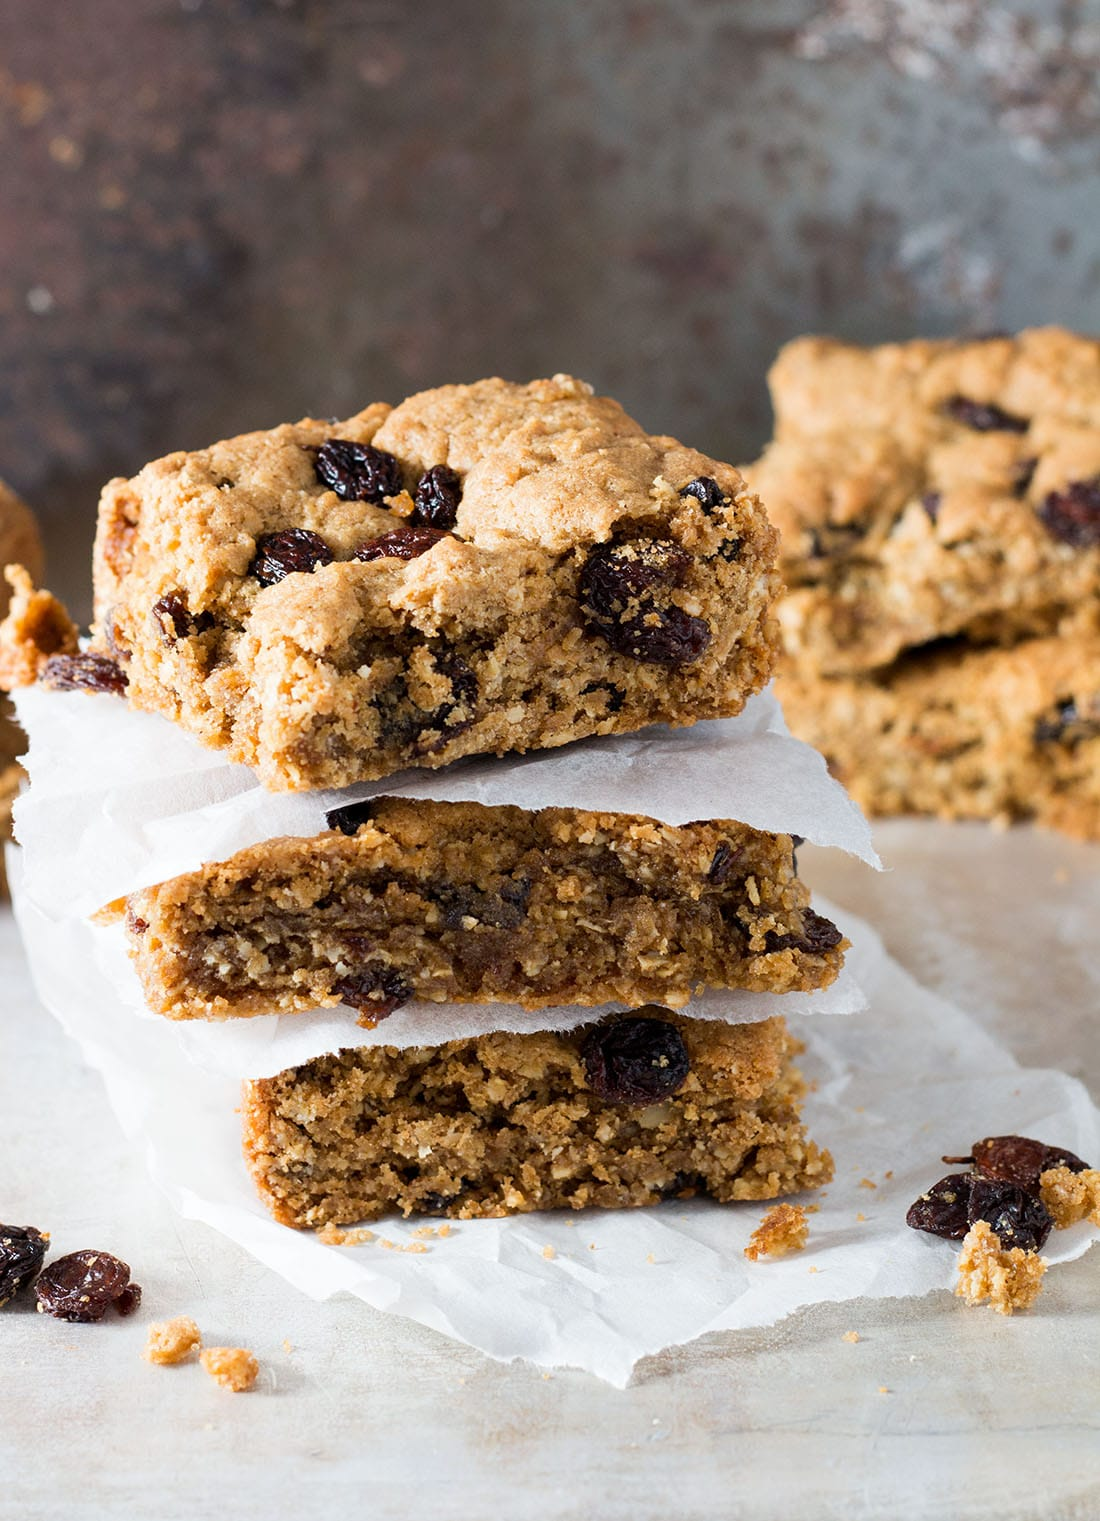 Cinnamon Raisin Oat Bars - Erren's Kitchen - This delightful recipe make an oatmeal cookie bar that's crisp on the outside with a buttery soft center. Best served warm, they are an amazing treat for dessert or even just a snack.